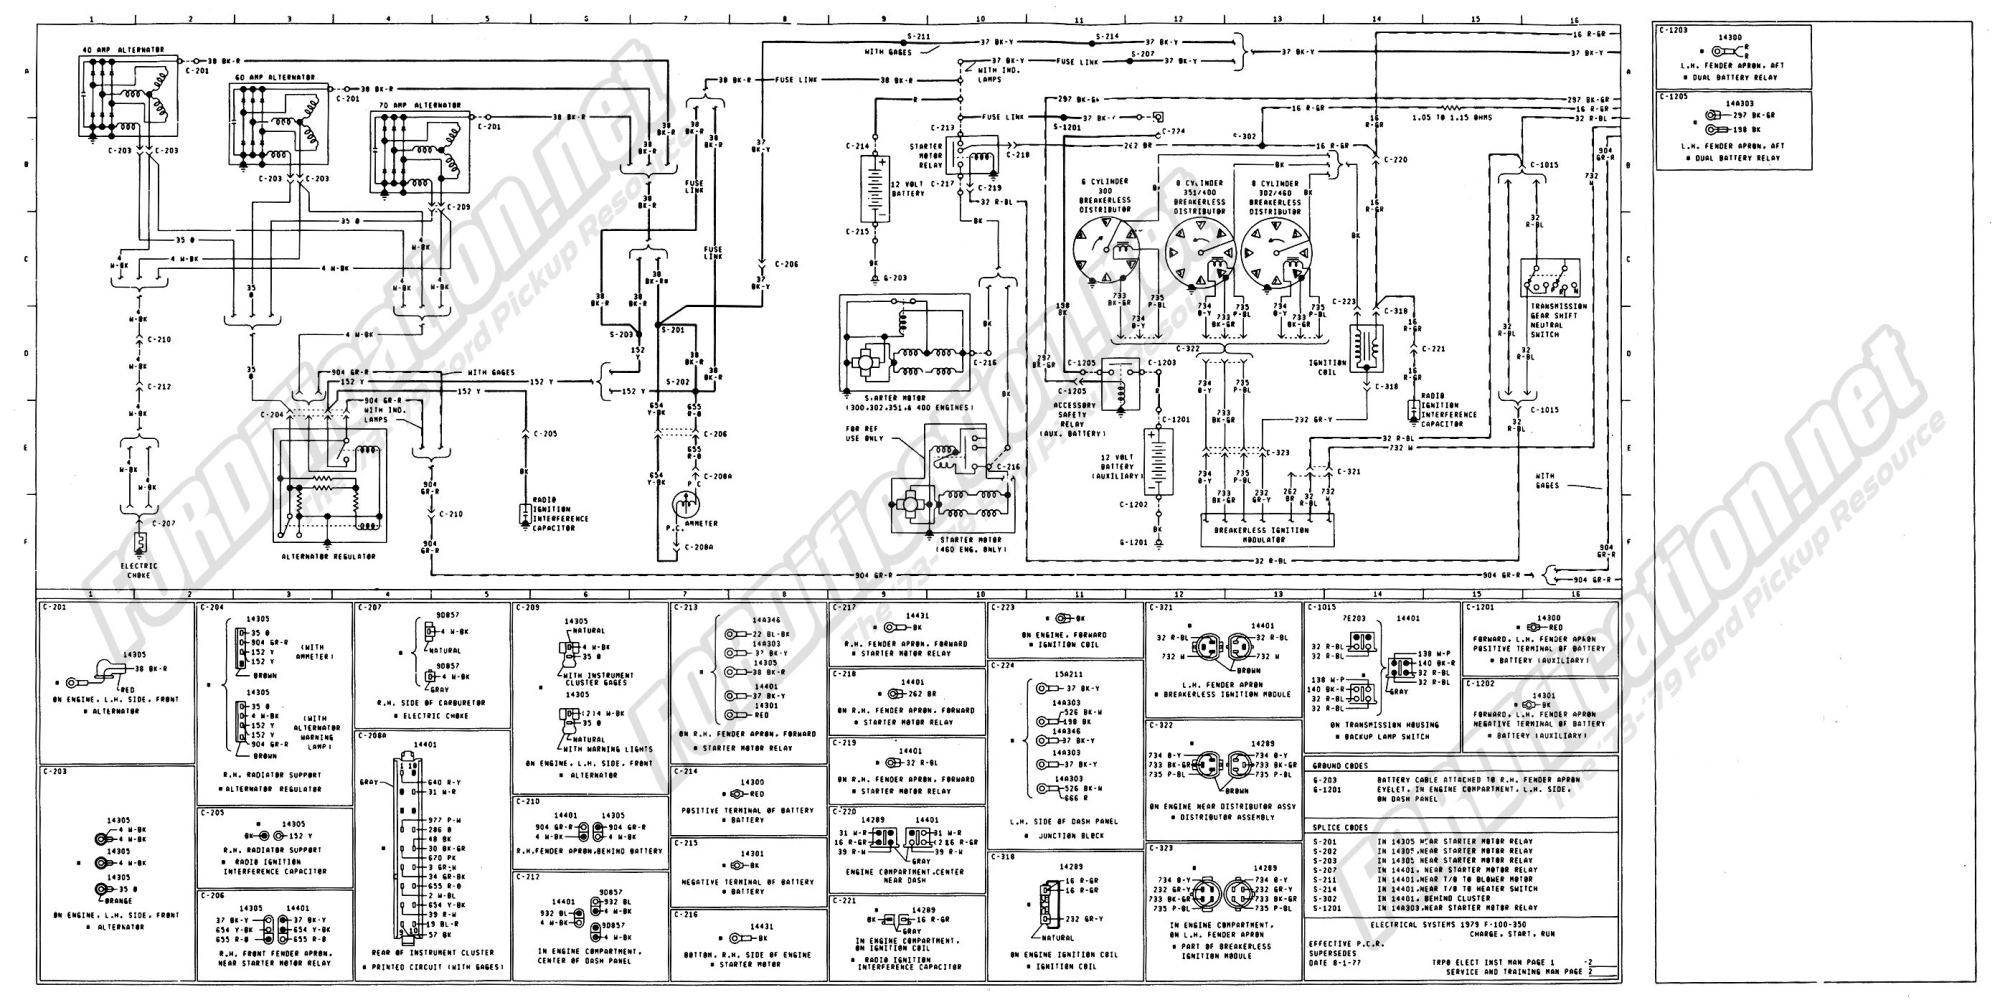 hight resolution of 1973 1979 ford truck wiring diagrams schematics fordification net 1995 ford f800 wiring diagram 1995 ford f00 wirig diagram